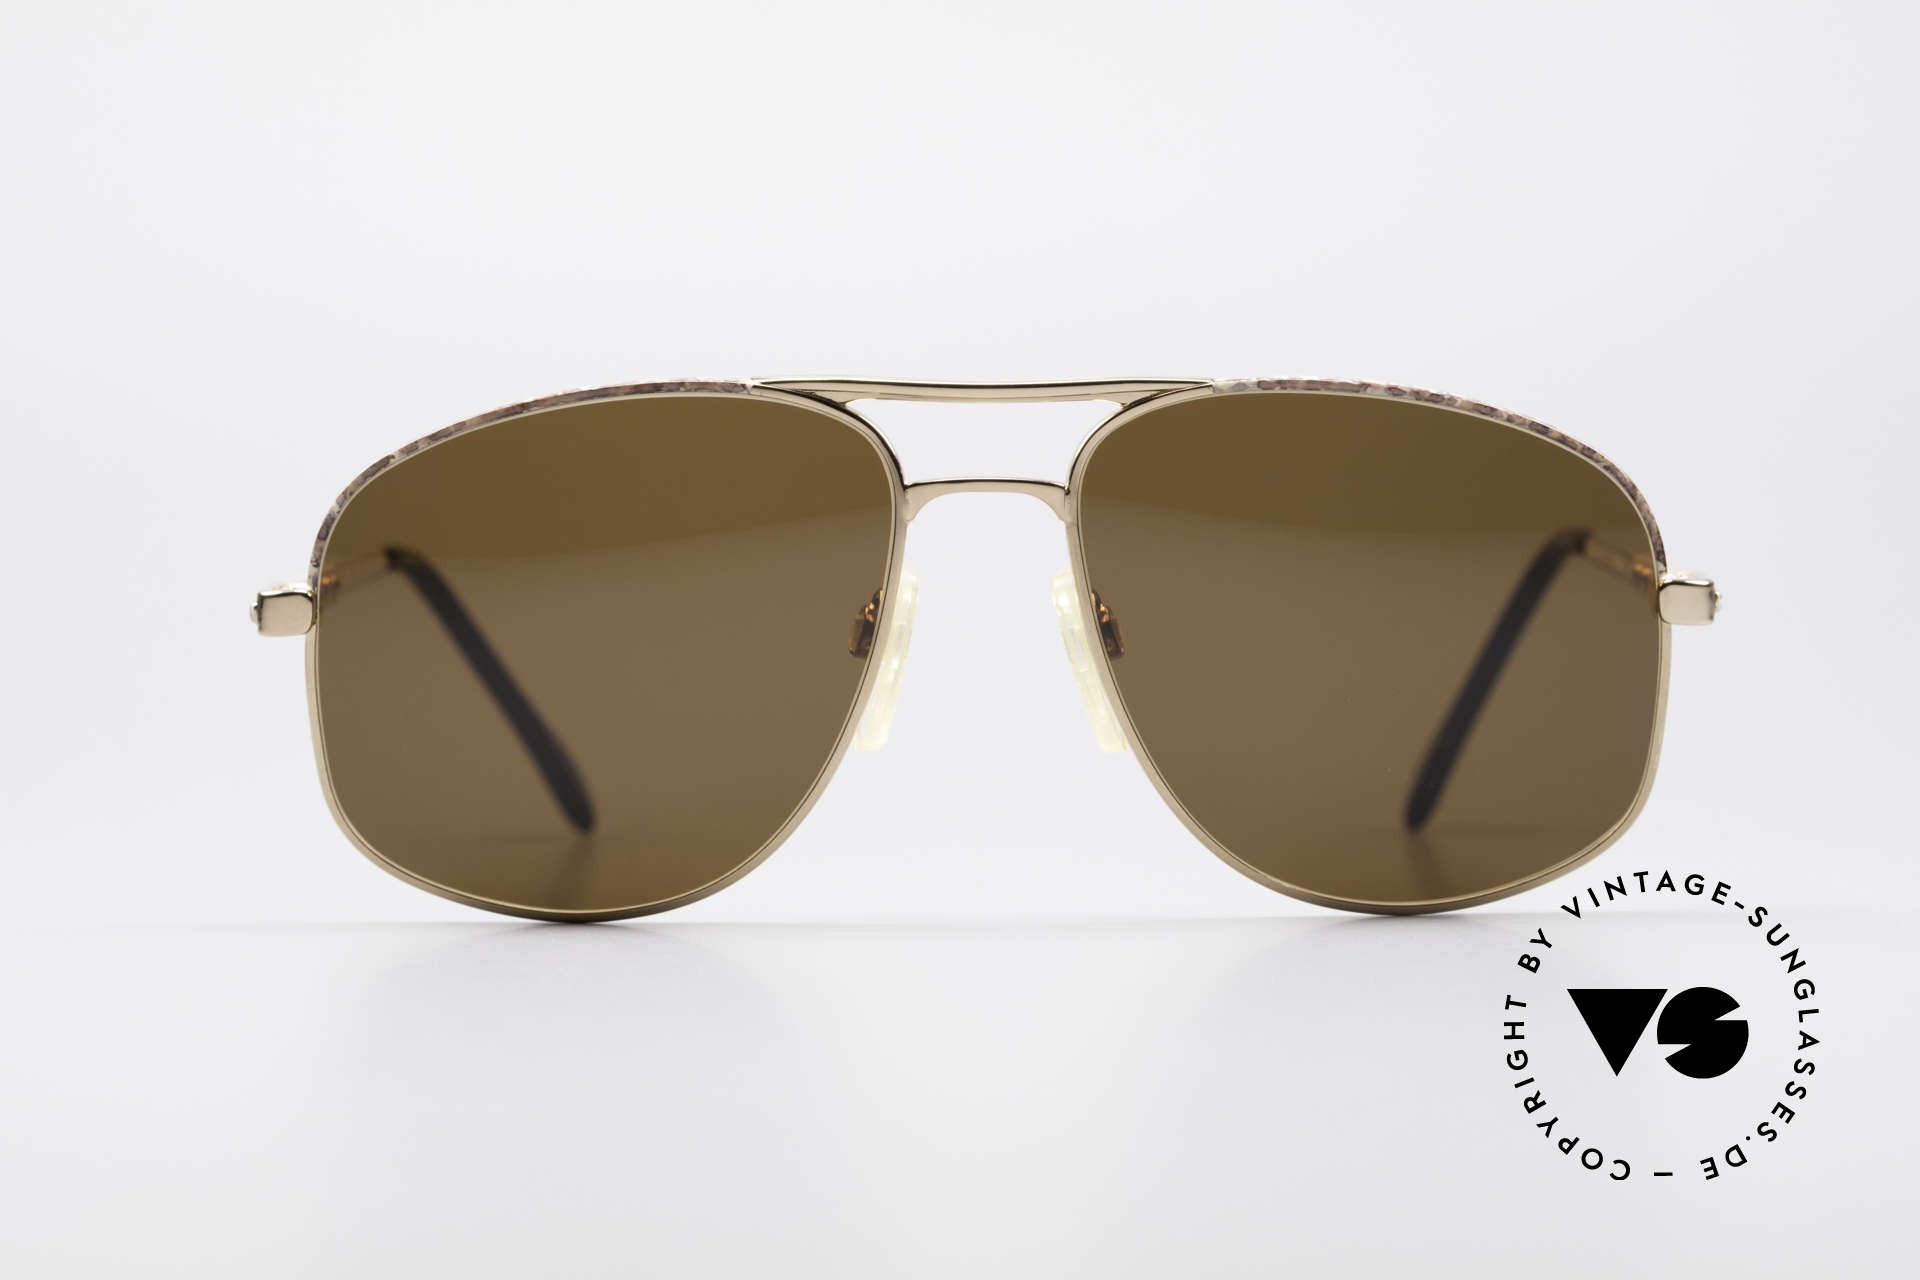 Zollitsch Cadre 8 18k Gold Plated Sunglasses, precious, 18kt gold-plated frame; made in W. Germany, Made for Men